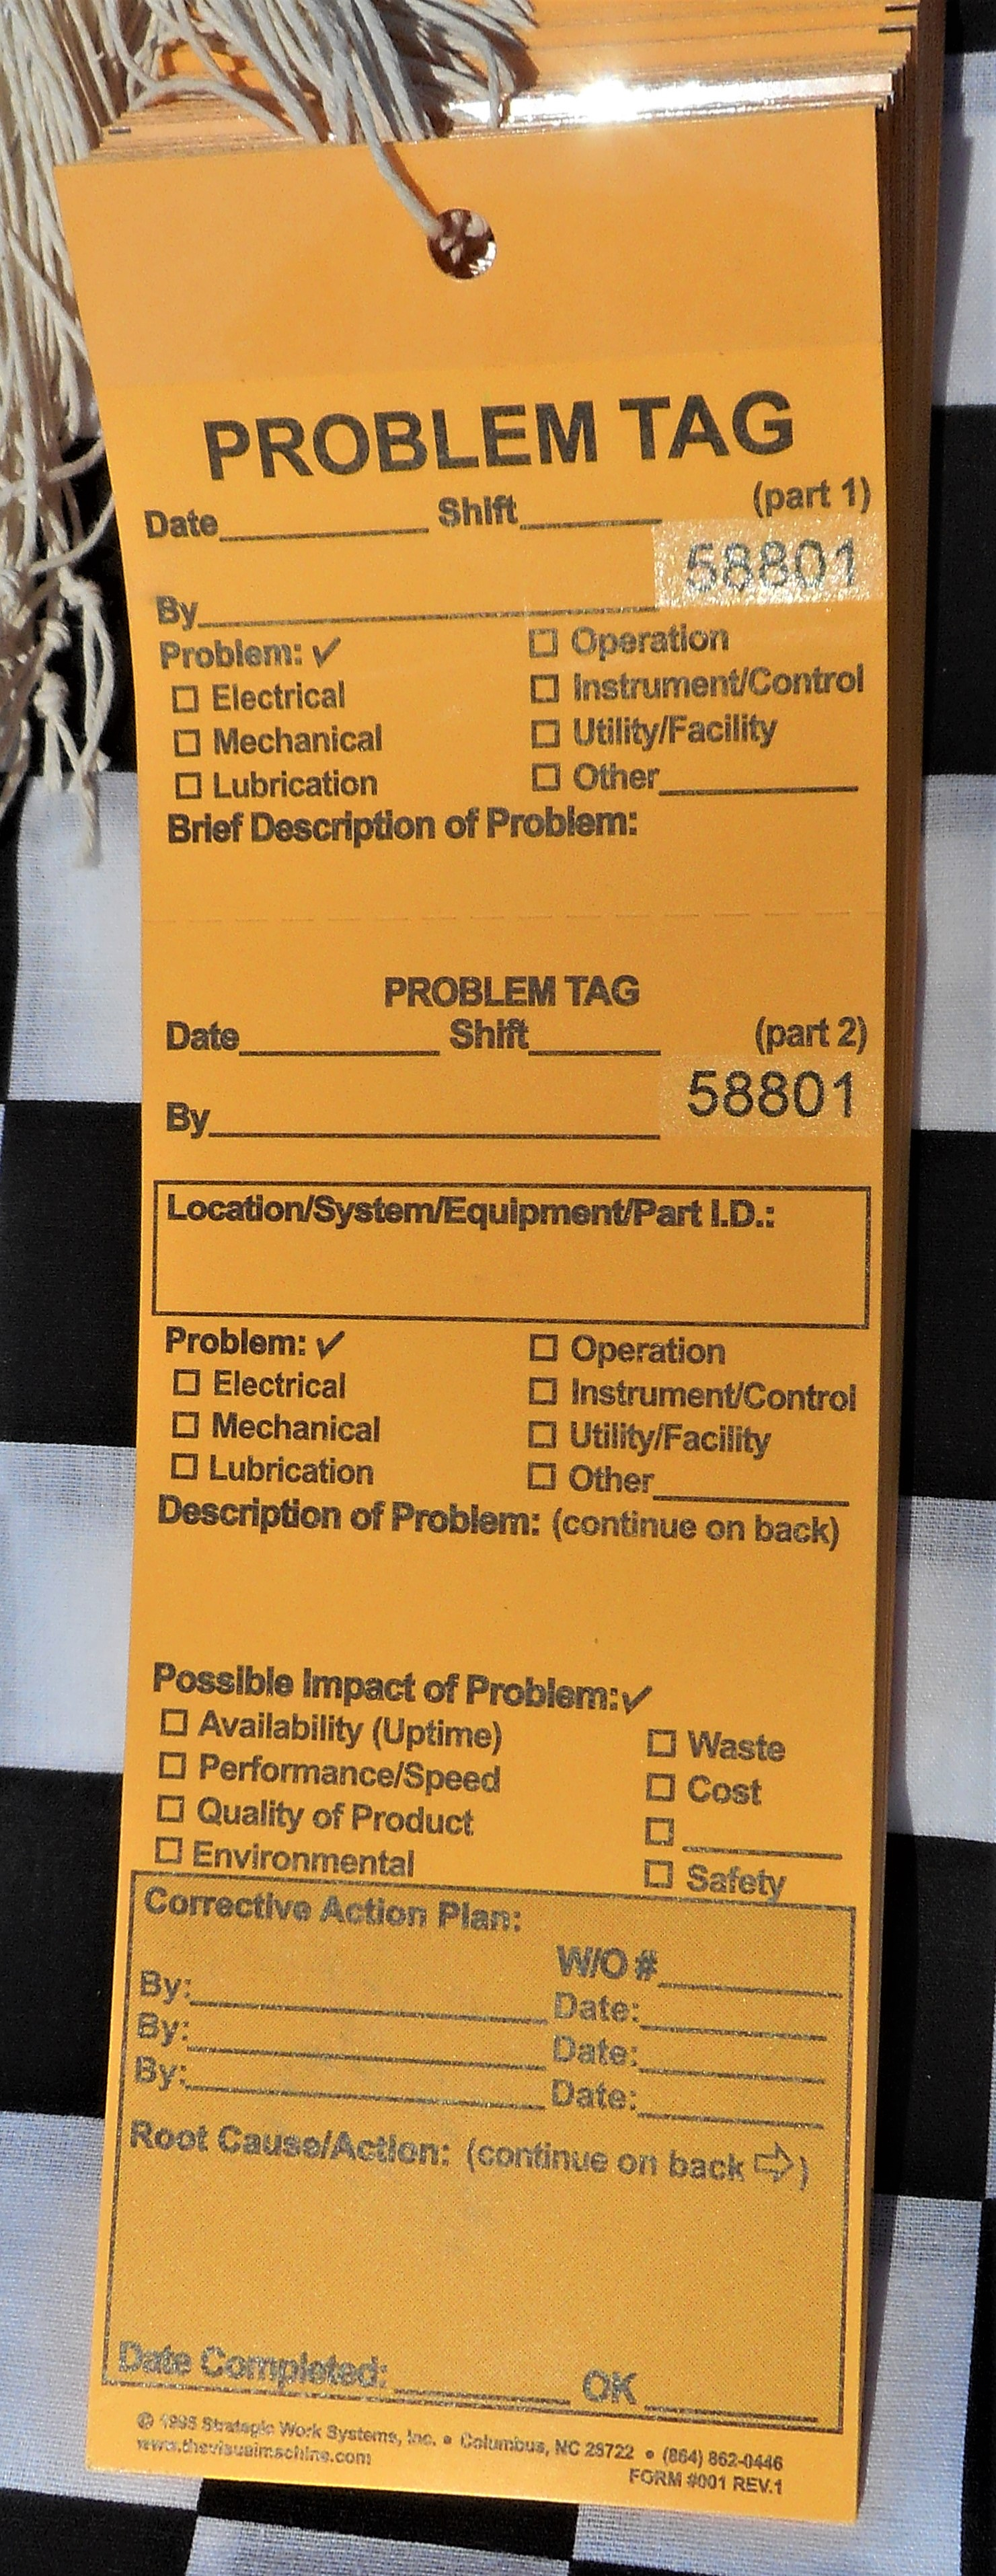 Problem Tags In Card Stock (Bundles of 50)